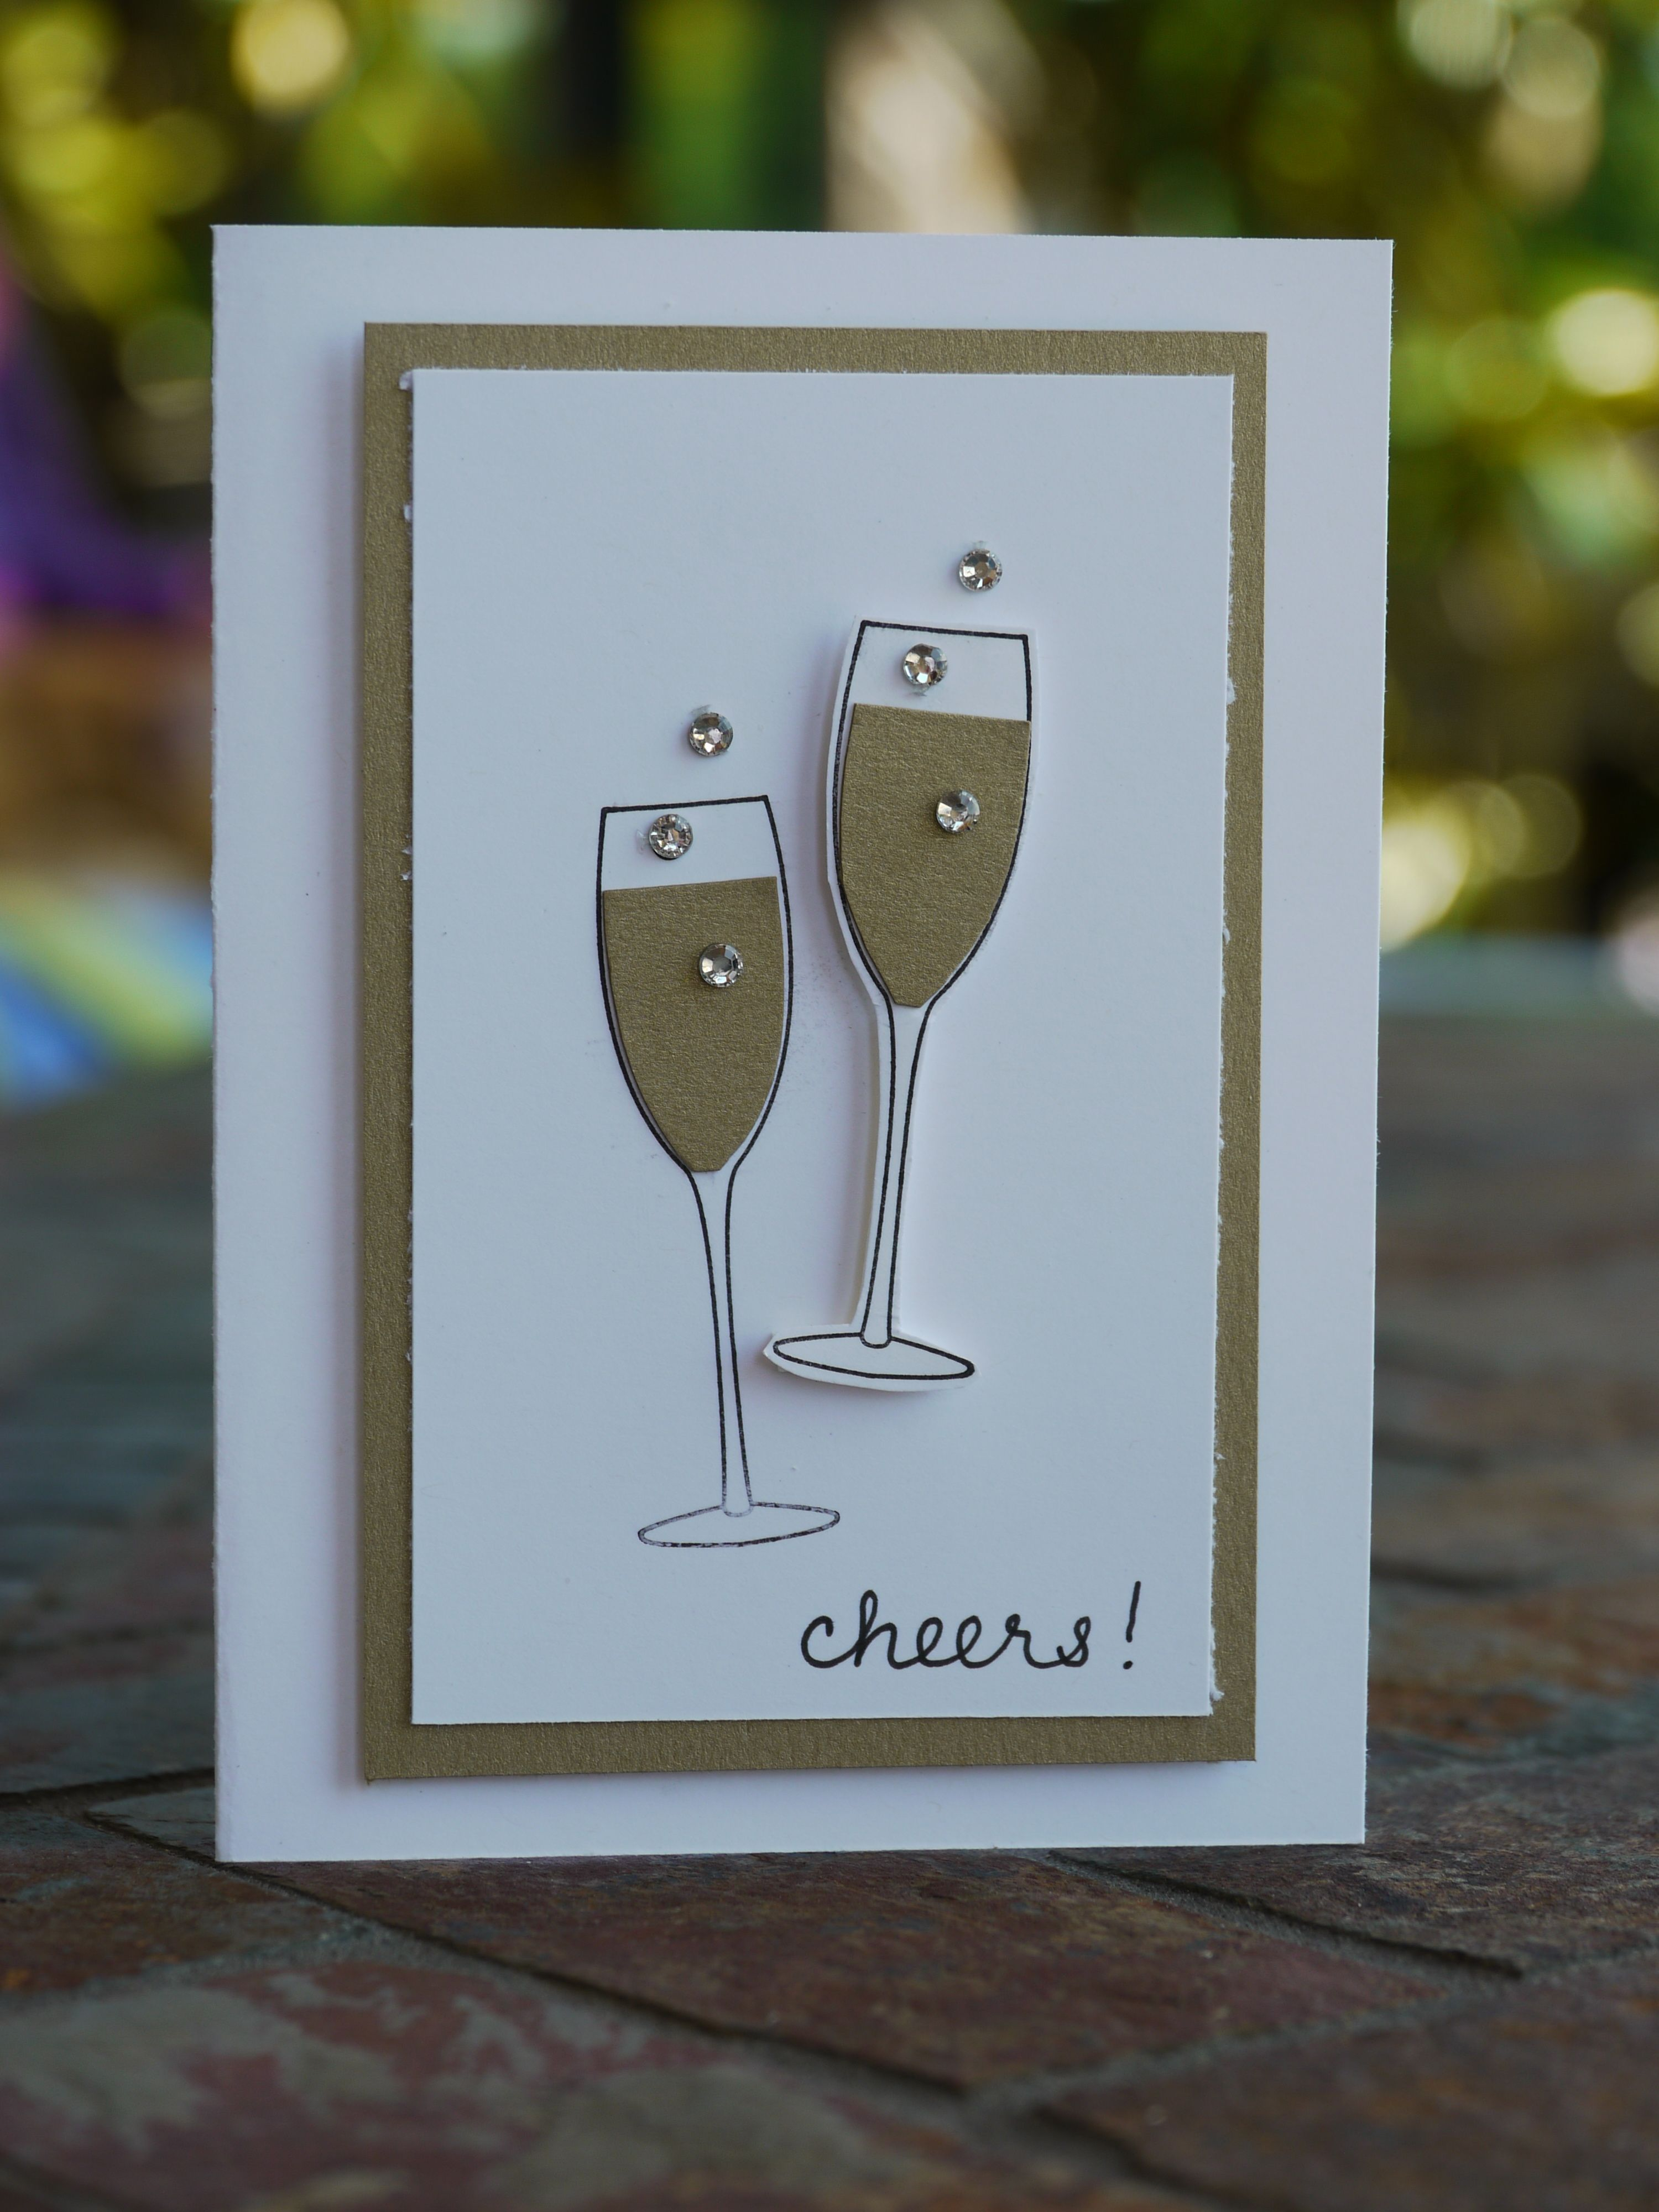 Cheers Champagne Card Embellished Events Cricut Anniversary Card Handmade Birthday Cards Cheers Card